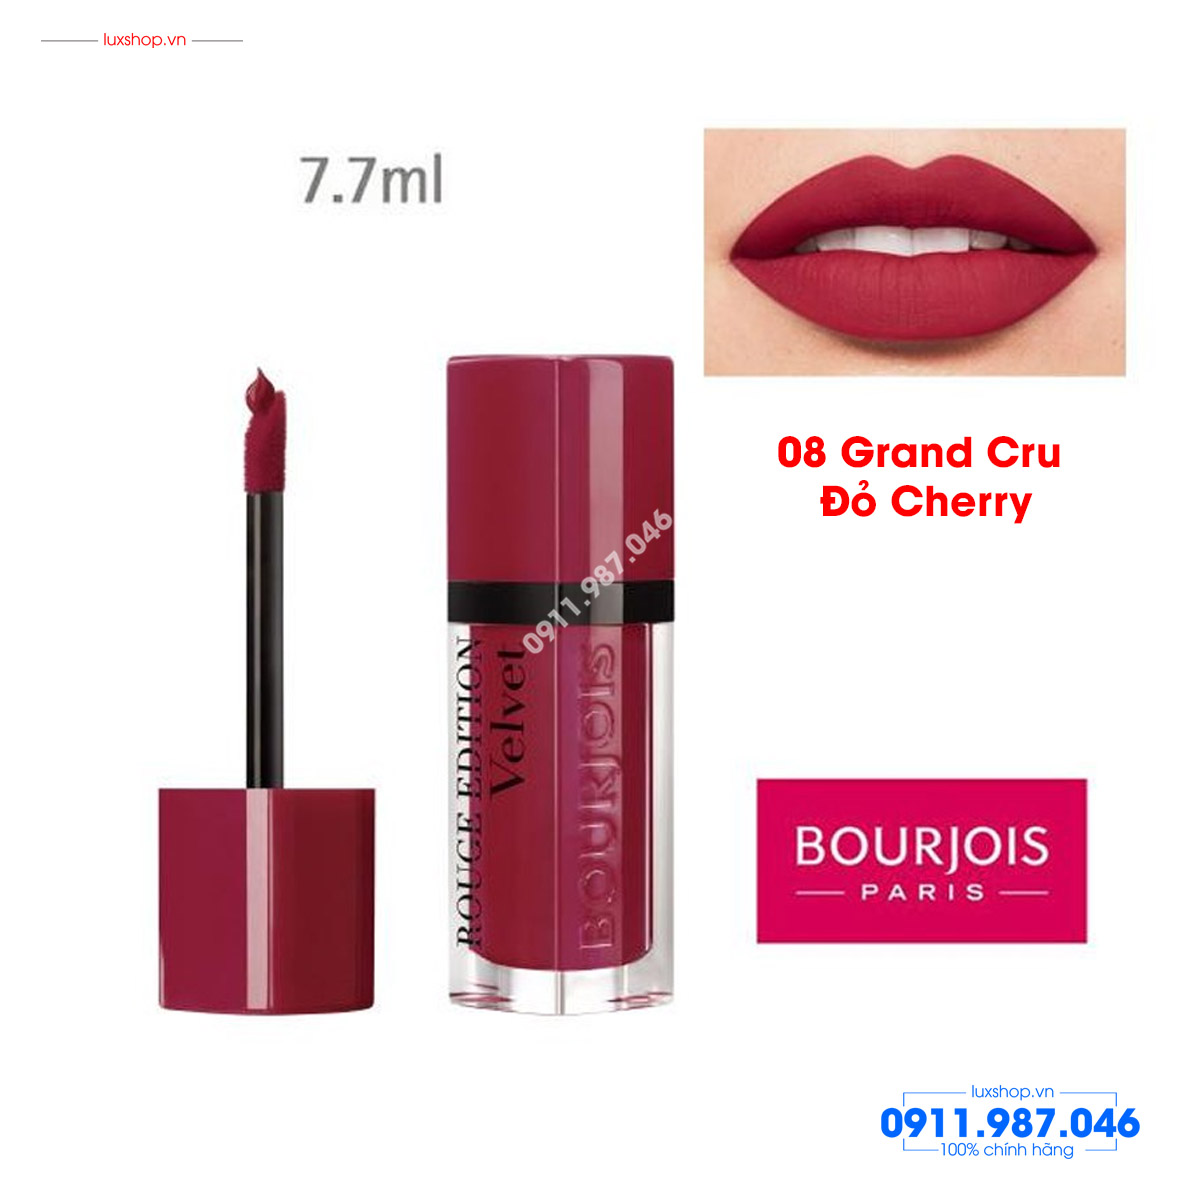 son-kem-li-velvet-08-grand-cru-do-cherry-bourjois-rouge-edition-chinh-hang-phap